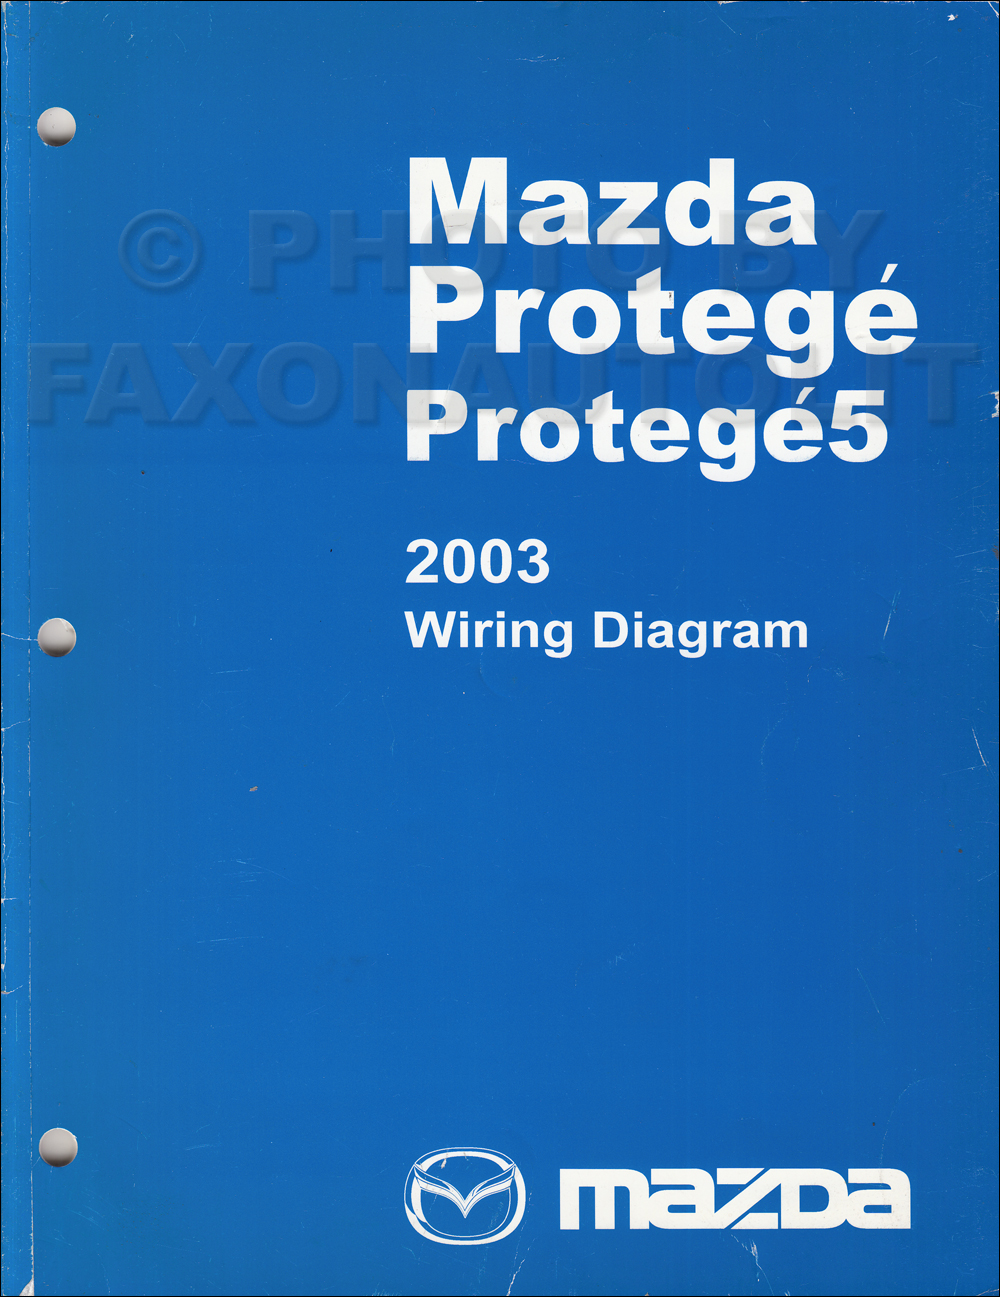 hight resolution of 2003 mazda protege5 wiring diagram wiring diagram source jeep fuse diagrams mazda protege5 fuse diagram